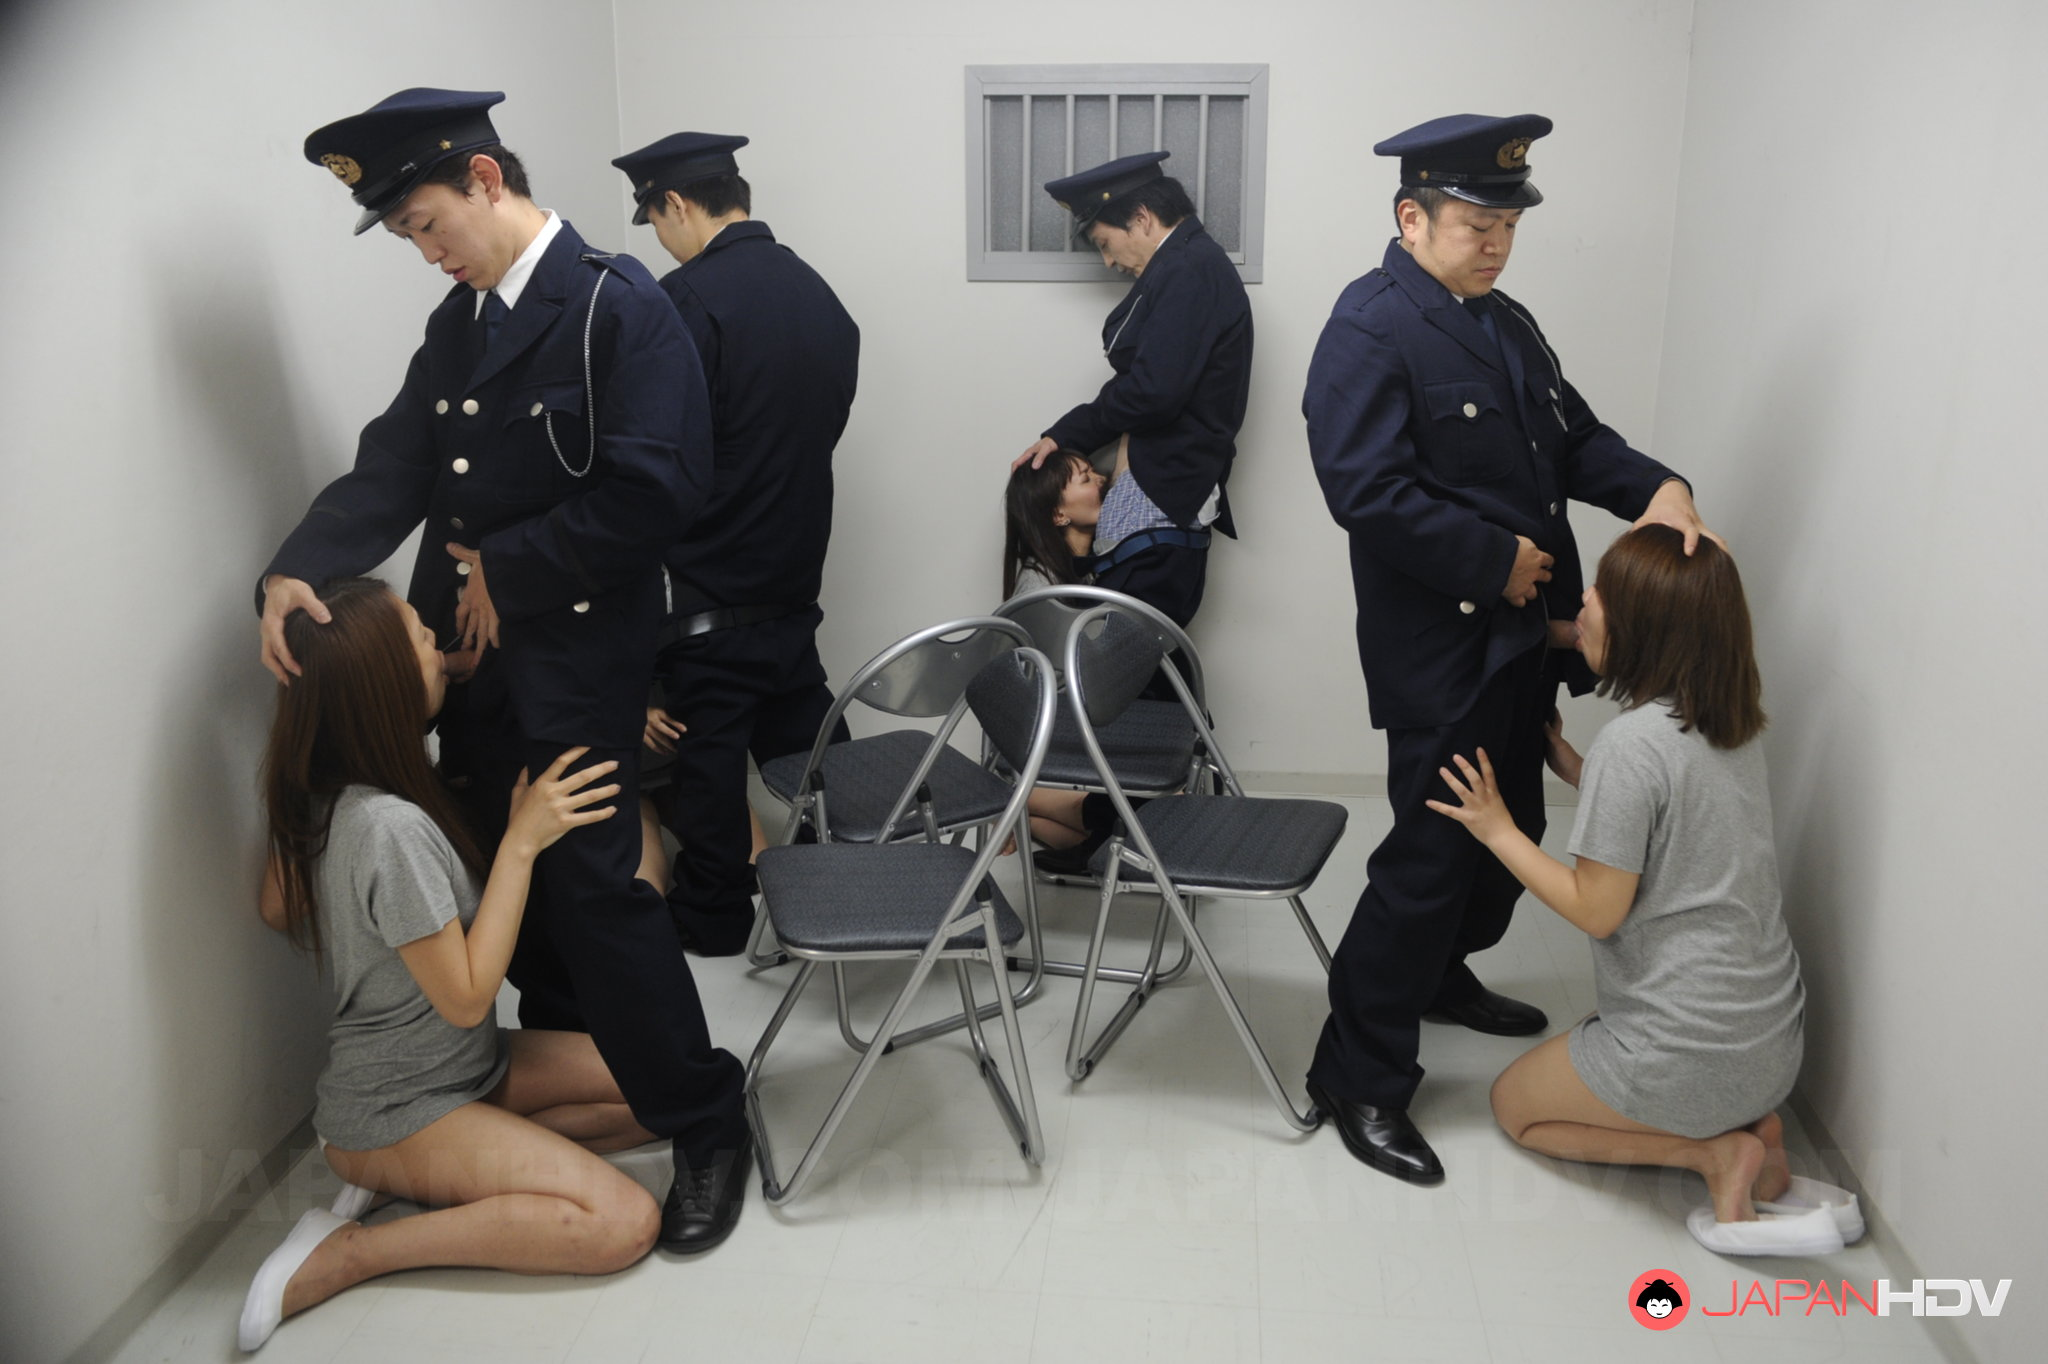 Group sex in prison — 10